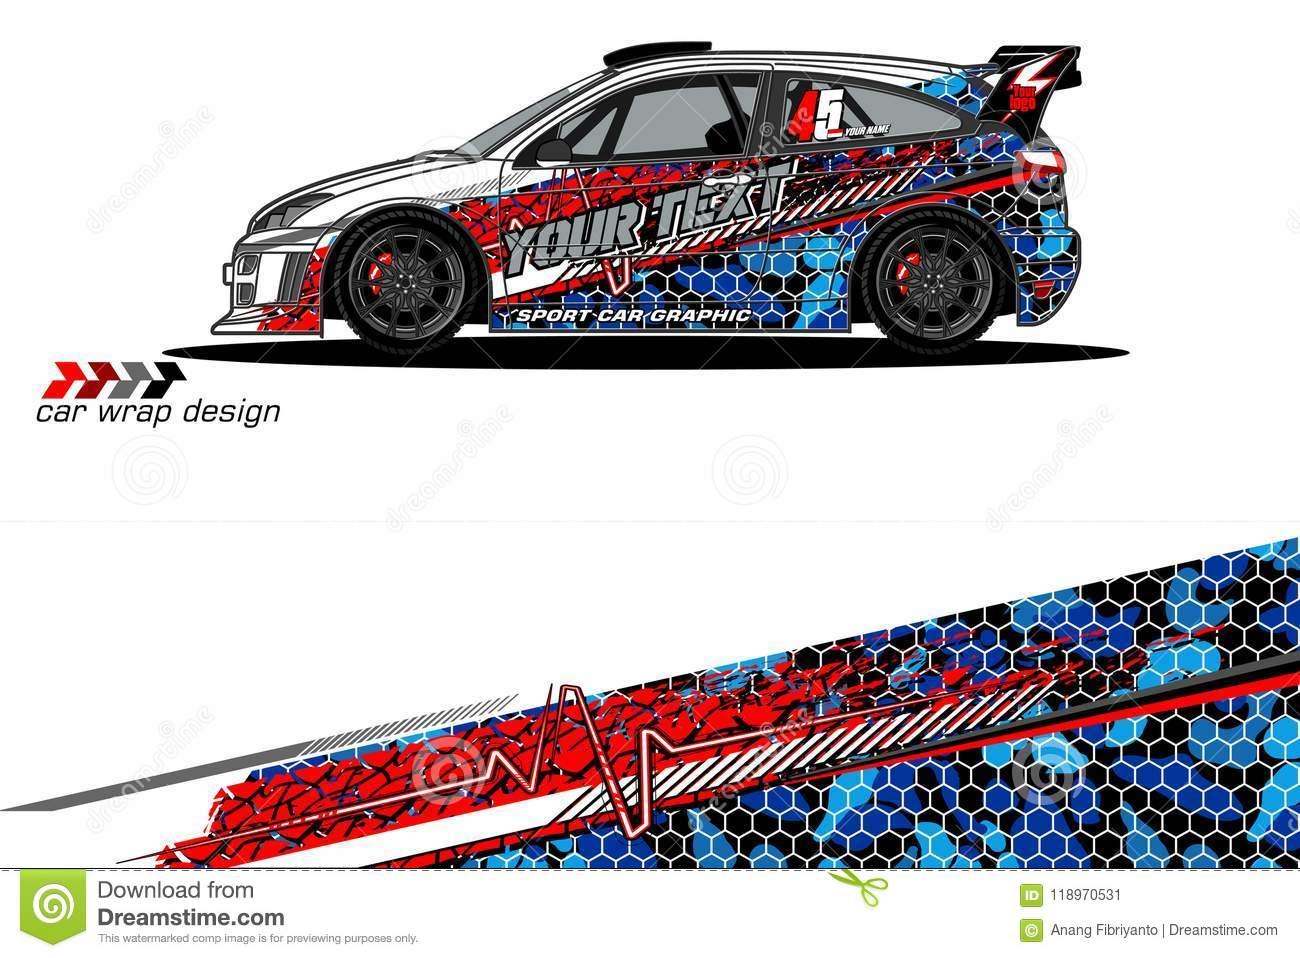 Vehicle livery graphic abstract grunge background design for vehicle vinyl wrap and car branding